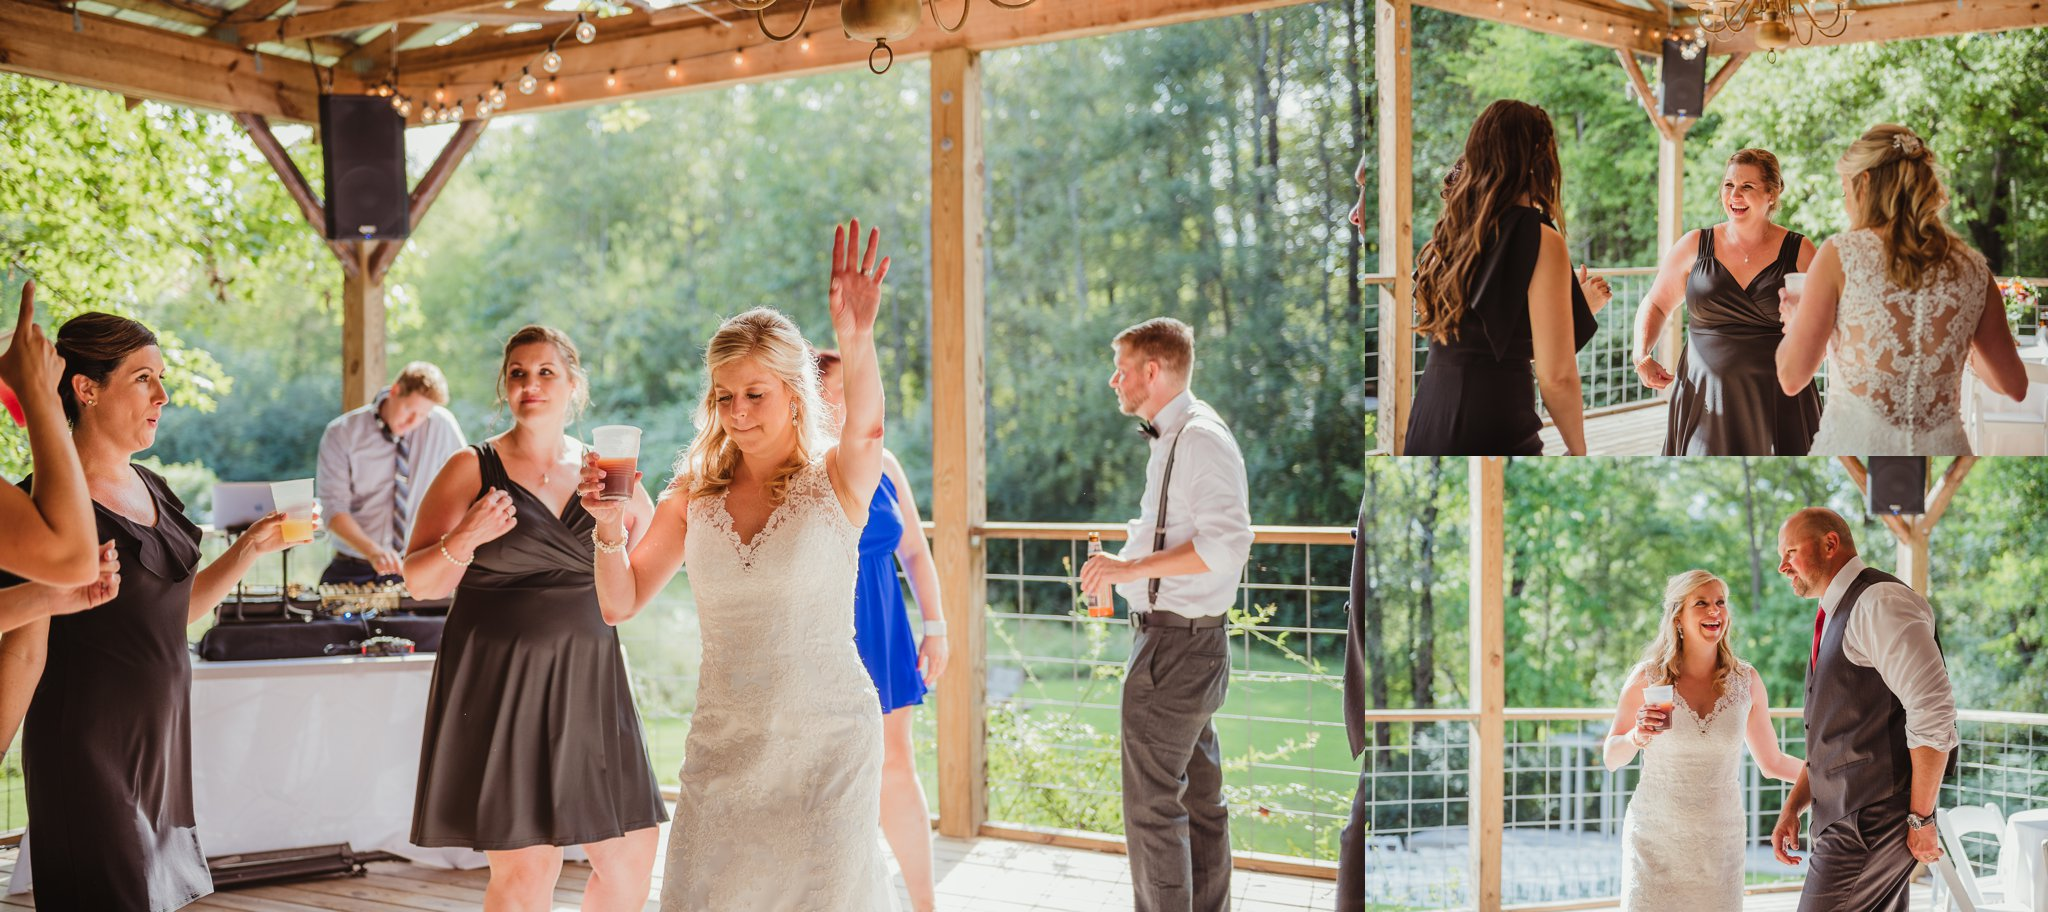 The bride and groom danced with guests during their wedding reception at Cedar Grove Acres near Raleigh, pictures by Rose Trail Images.